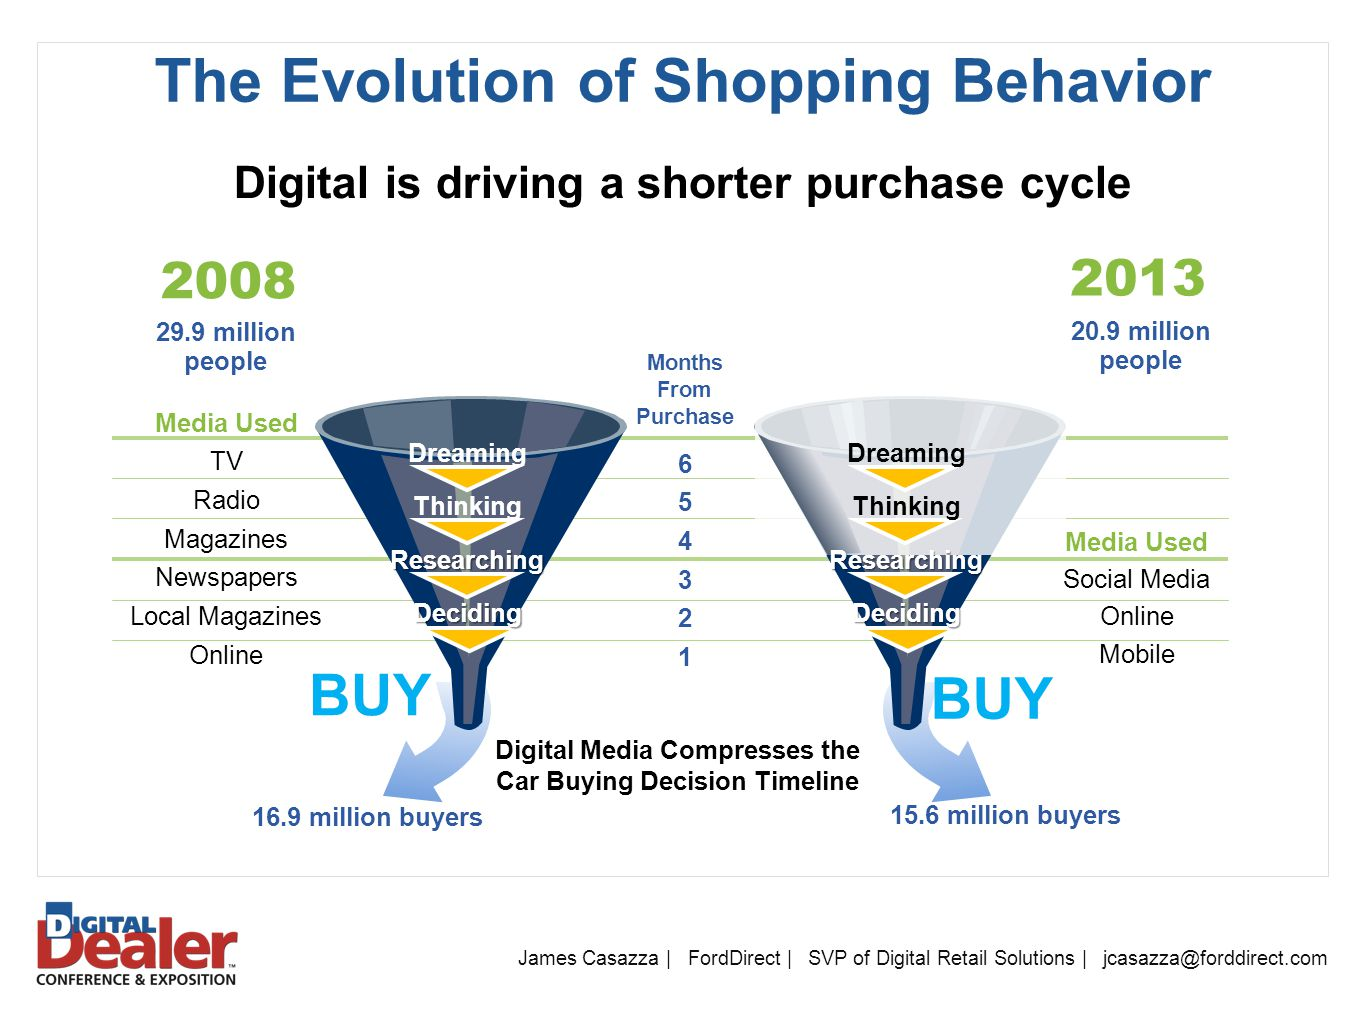 The Evolution of Shopping Behavior James Casazza | FordDirect | SVP of Digital Retail Solutions | jcasazza@forddirect.com Digital is driving a shorter purchase cycle Digital Media Compresses the Car Buying Decision Timeline Media Used TV Radio Magazines Newspapers Local Magazines Online 29.9 million people 20.9 million people 2008 2013 Months From Purchase 654321654321 BUY Dreaming ThinkingResearchingDeciding 15.6 million buyers 16.9 million buyers Media Used Social Media Online Mobile Dreaming ThinkingResearchingDeciding